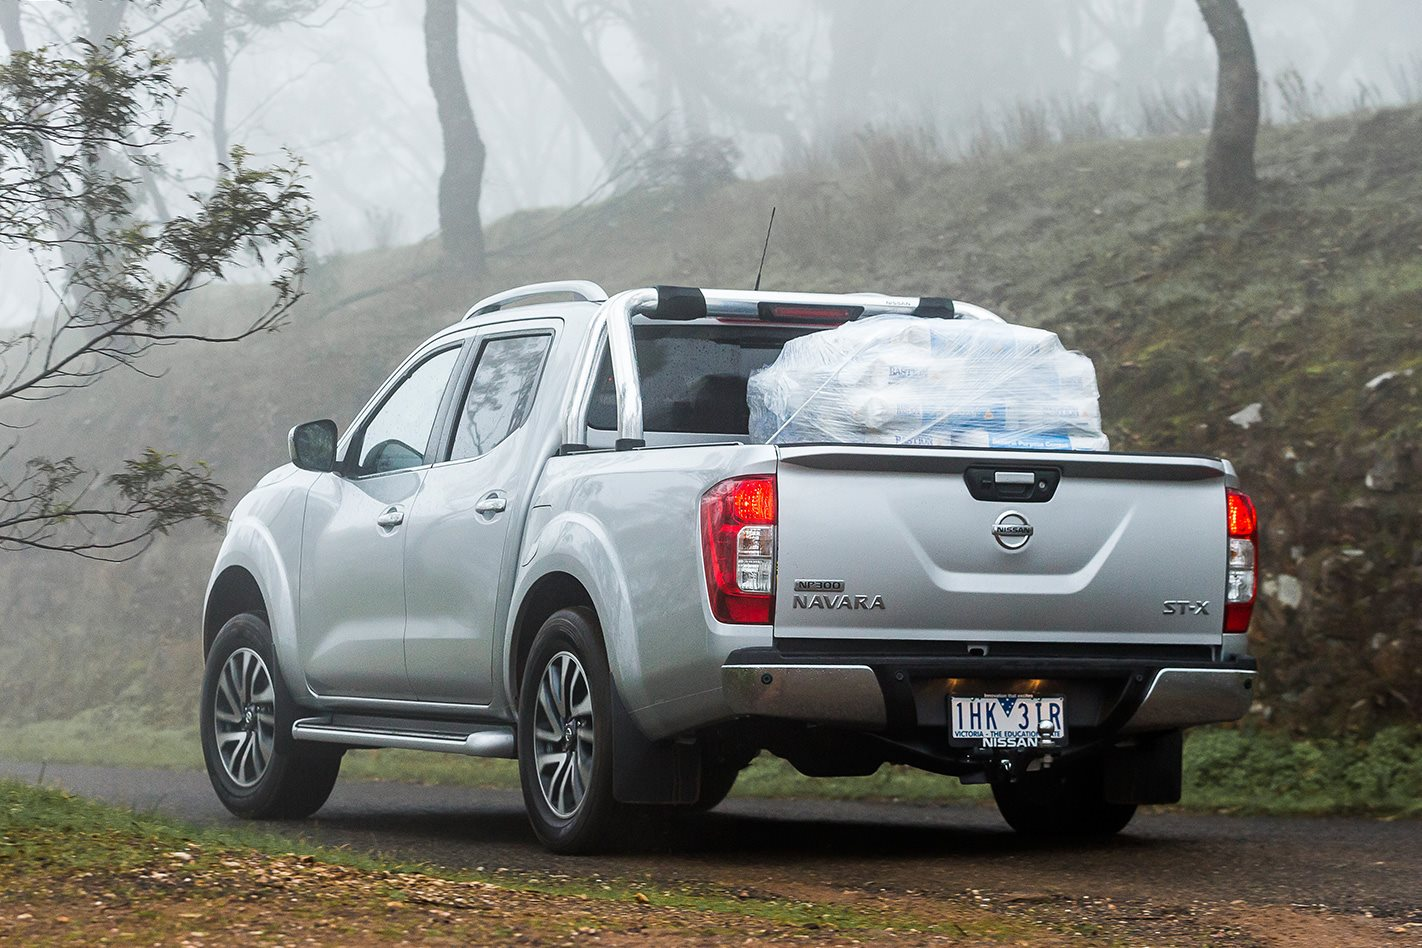 nissan navara to address suspension issues 4x4 australia. Black Bedroom Furniture Sets. Home Design Ideas